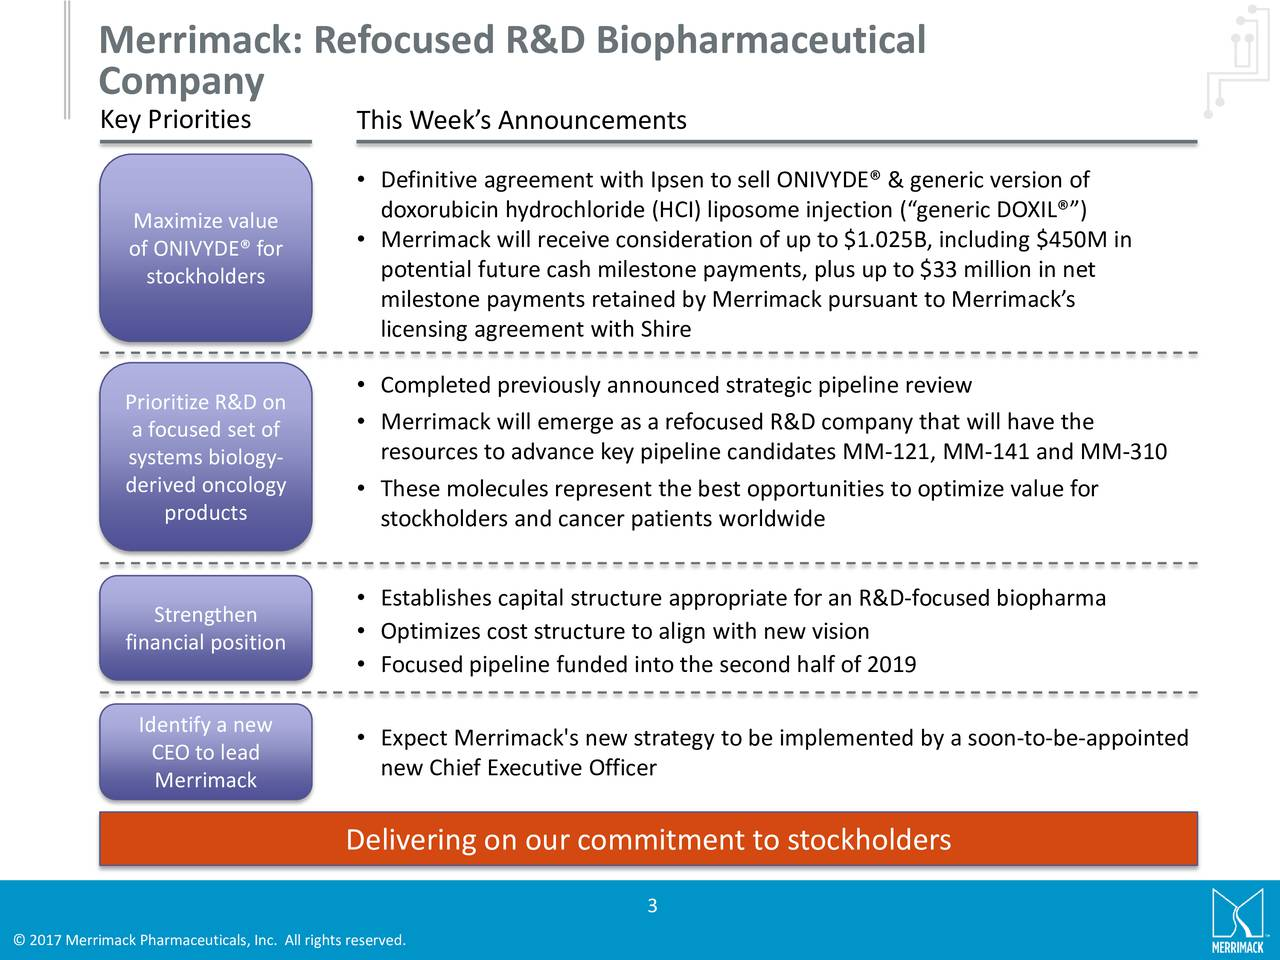 Company Key Priorities This Weeks Announcements Definitive agreement with Ipsen to sell ONIVYDE & generic version of Maximize value doxorubicin hydrochloride (HCI) liposome injection (generic DOXIL) of ONIVYDE for  Merrimack will receive consideration of up to $1.025B, including $450M in potential future cash milestone payments, plus up to $33 million in net stockholders milestone payments retained by Merrimack pursuant to Merrimacks licensing agreement with Shire Completed previously announced strategicpipeline review Prioritize R&D on  Merrimack will emerge as a refocused R&D company that will have the a focused set of systems biology- resources to advance key pipeline candidates MM-121, MM-141 and MM-310 derived oncology  These molecules represent the best opportunities to optimize value for products stockholders and cancer patients worldwide Strengthen  Establishes capital structure appropriate for an R&D-focused biopharma financial position  Optimizes cost structure to align with new vision Focused pipeline funded into the second half of 2019 Identify a new  Expect Merrimack's new strategy to be implemented by a soon-to-be-appointed CEO to lead Merrimack new Chief Executive Officer Delivering on our commitment to stockholders 3 2017 Merrimack Pharmaceuticals, Inc. All rights reserved.